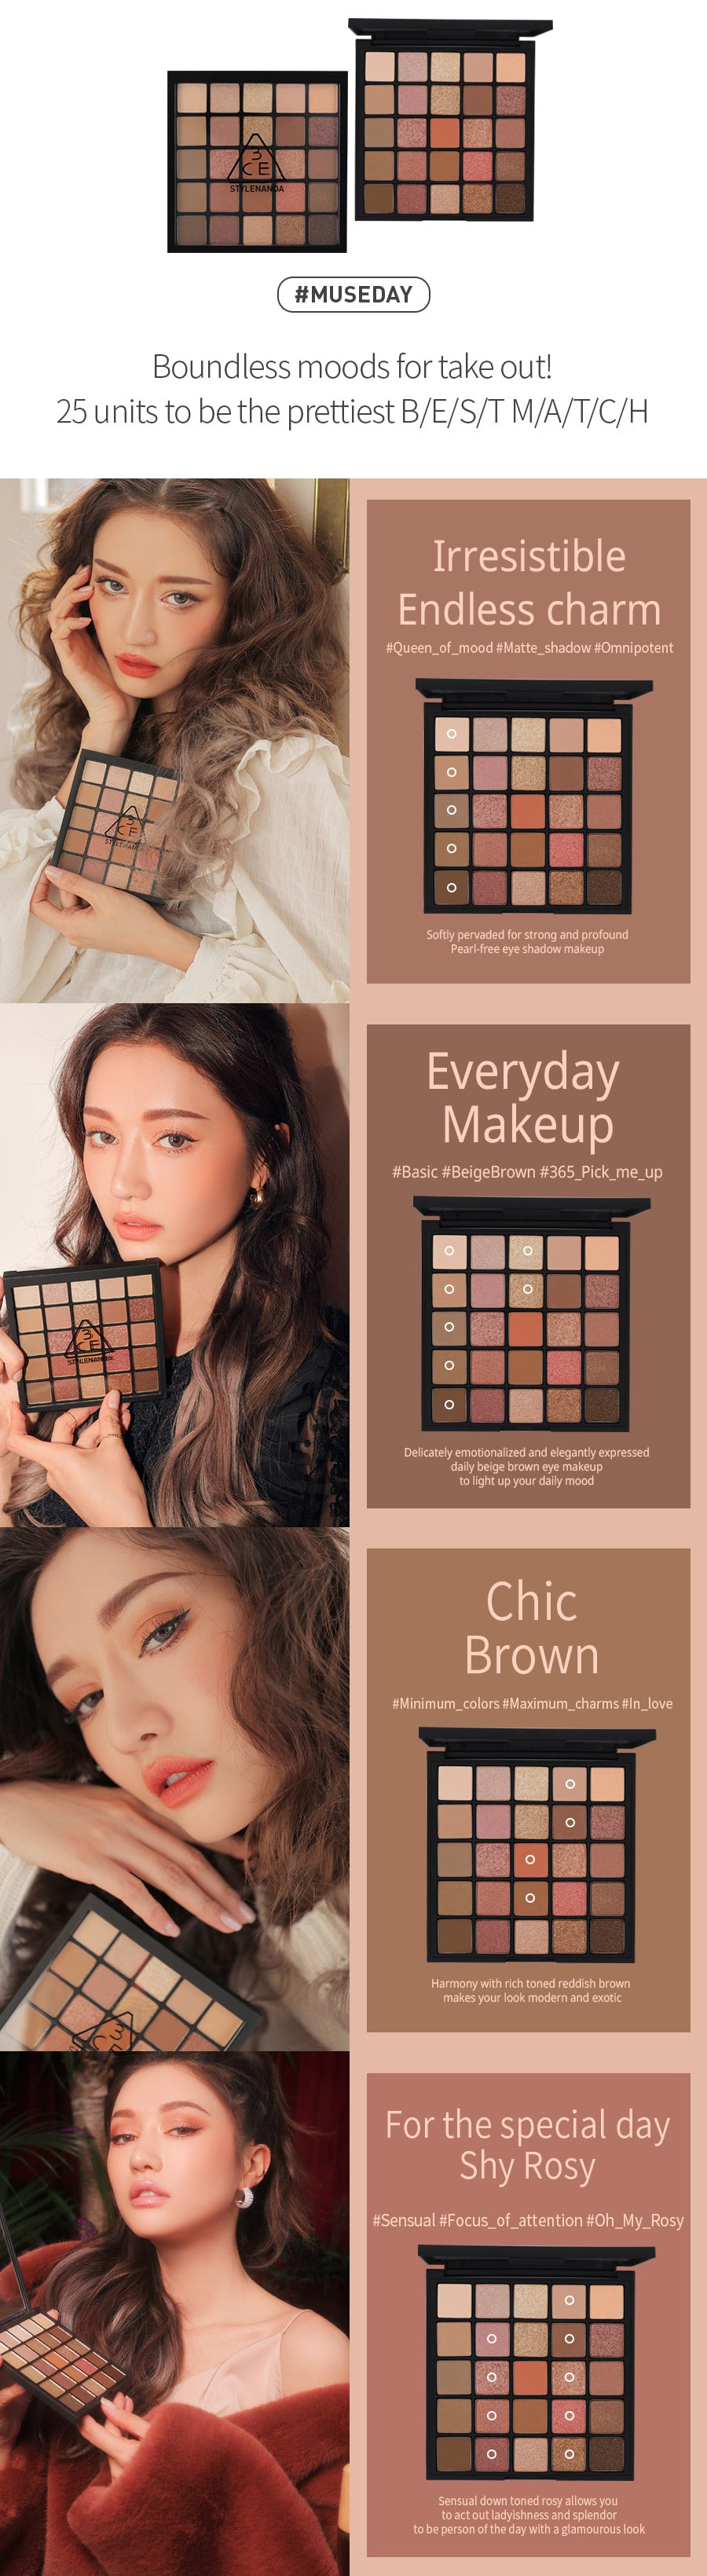 3CE Pro Multi Eye Color Palette #Museday